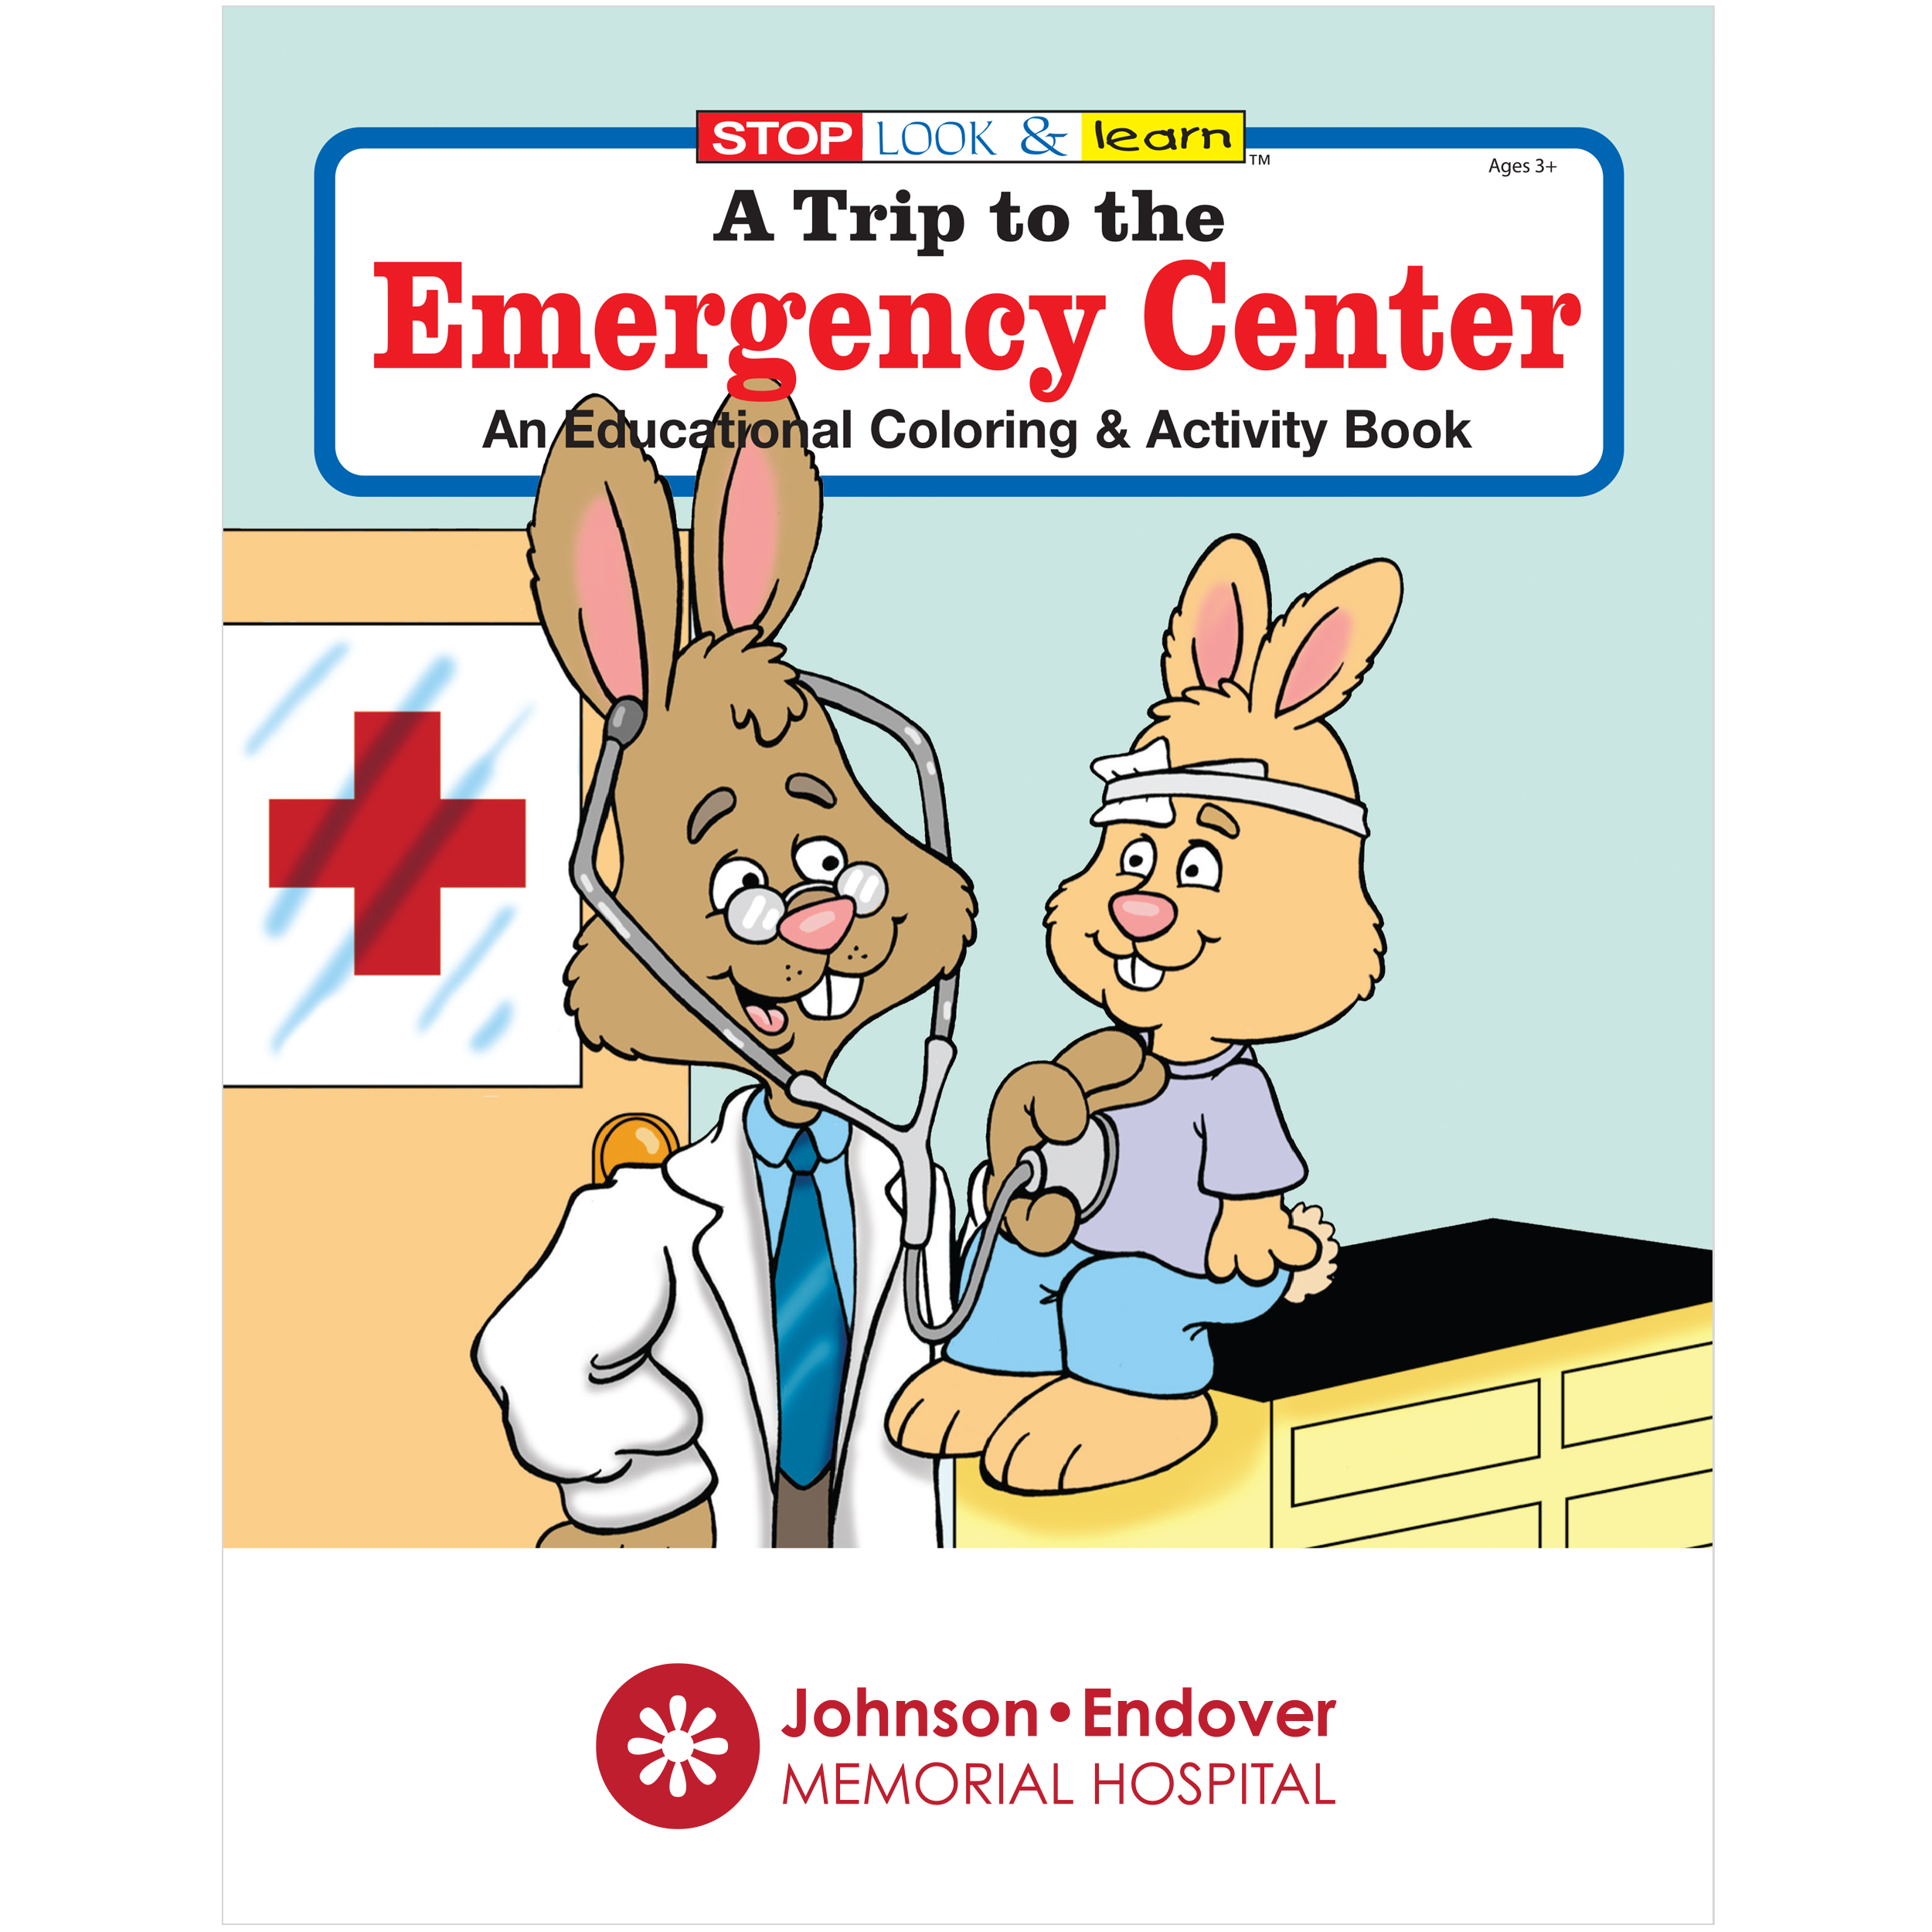 Trip to the Emergency Center Coloring & Activity Book